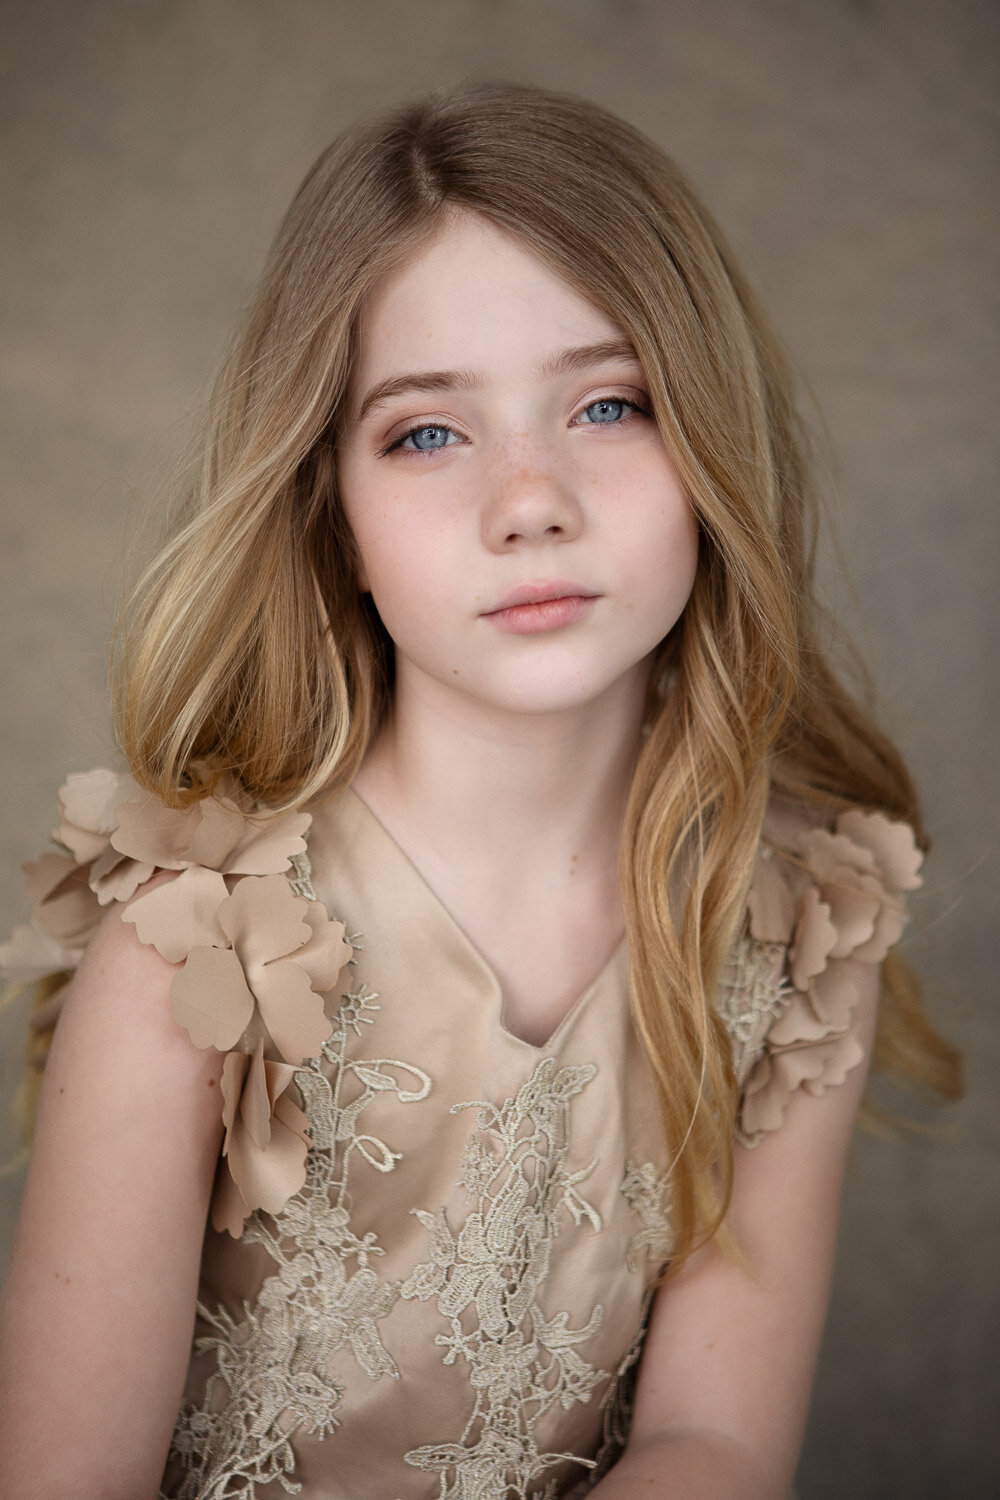 Professional little beauty portrait of girl in gold dress in Buffalo, New York